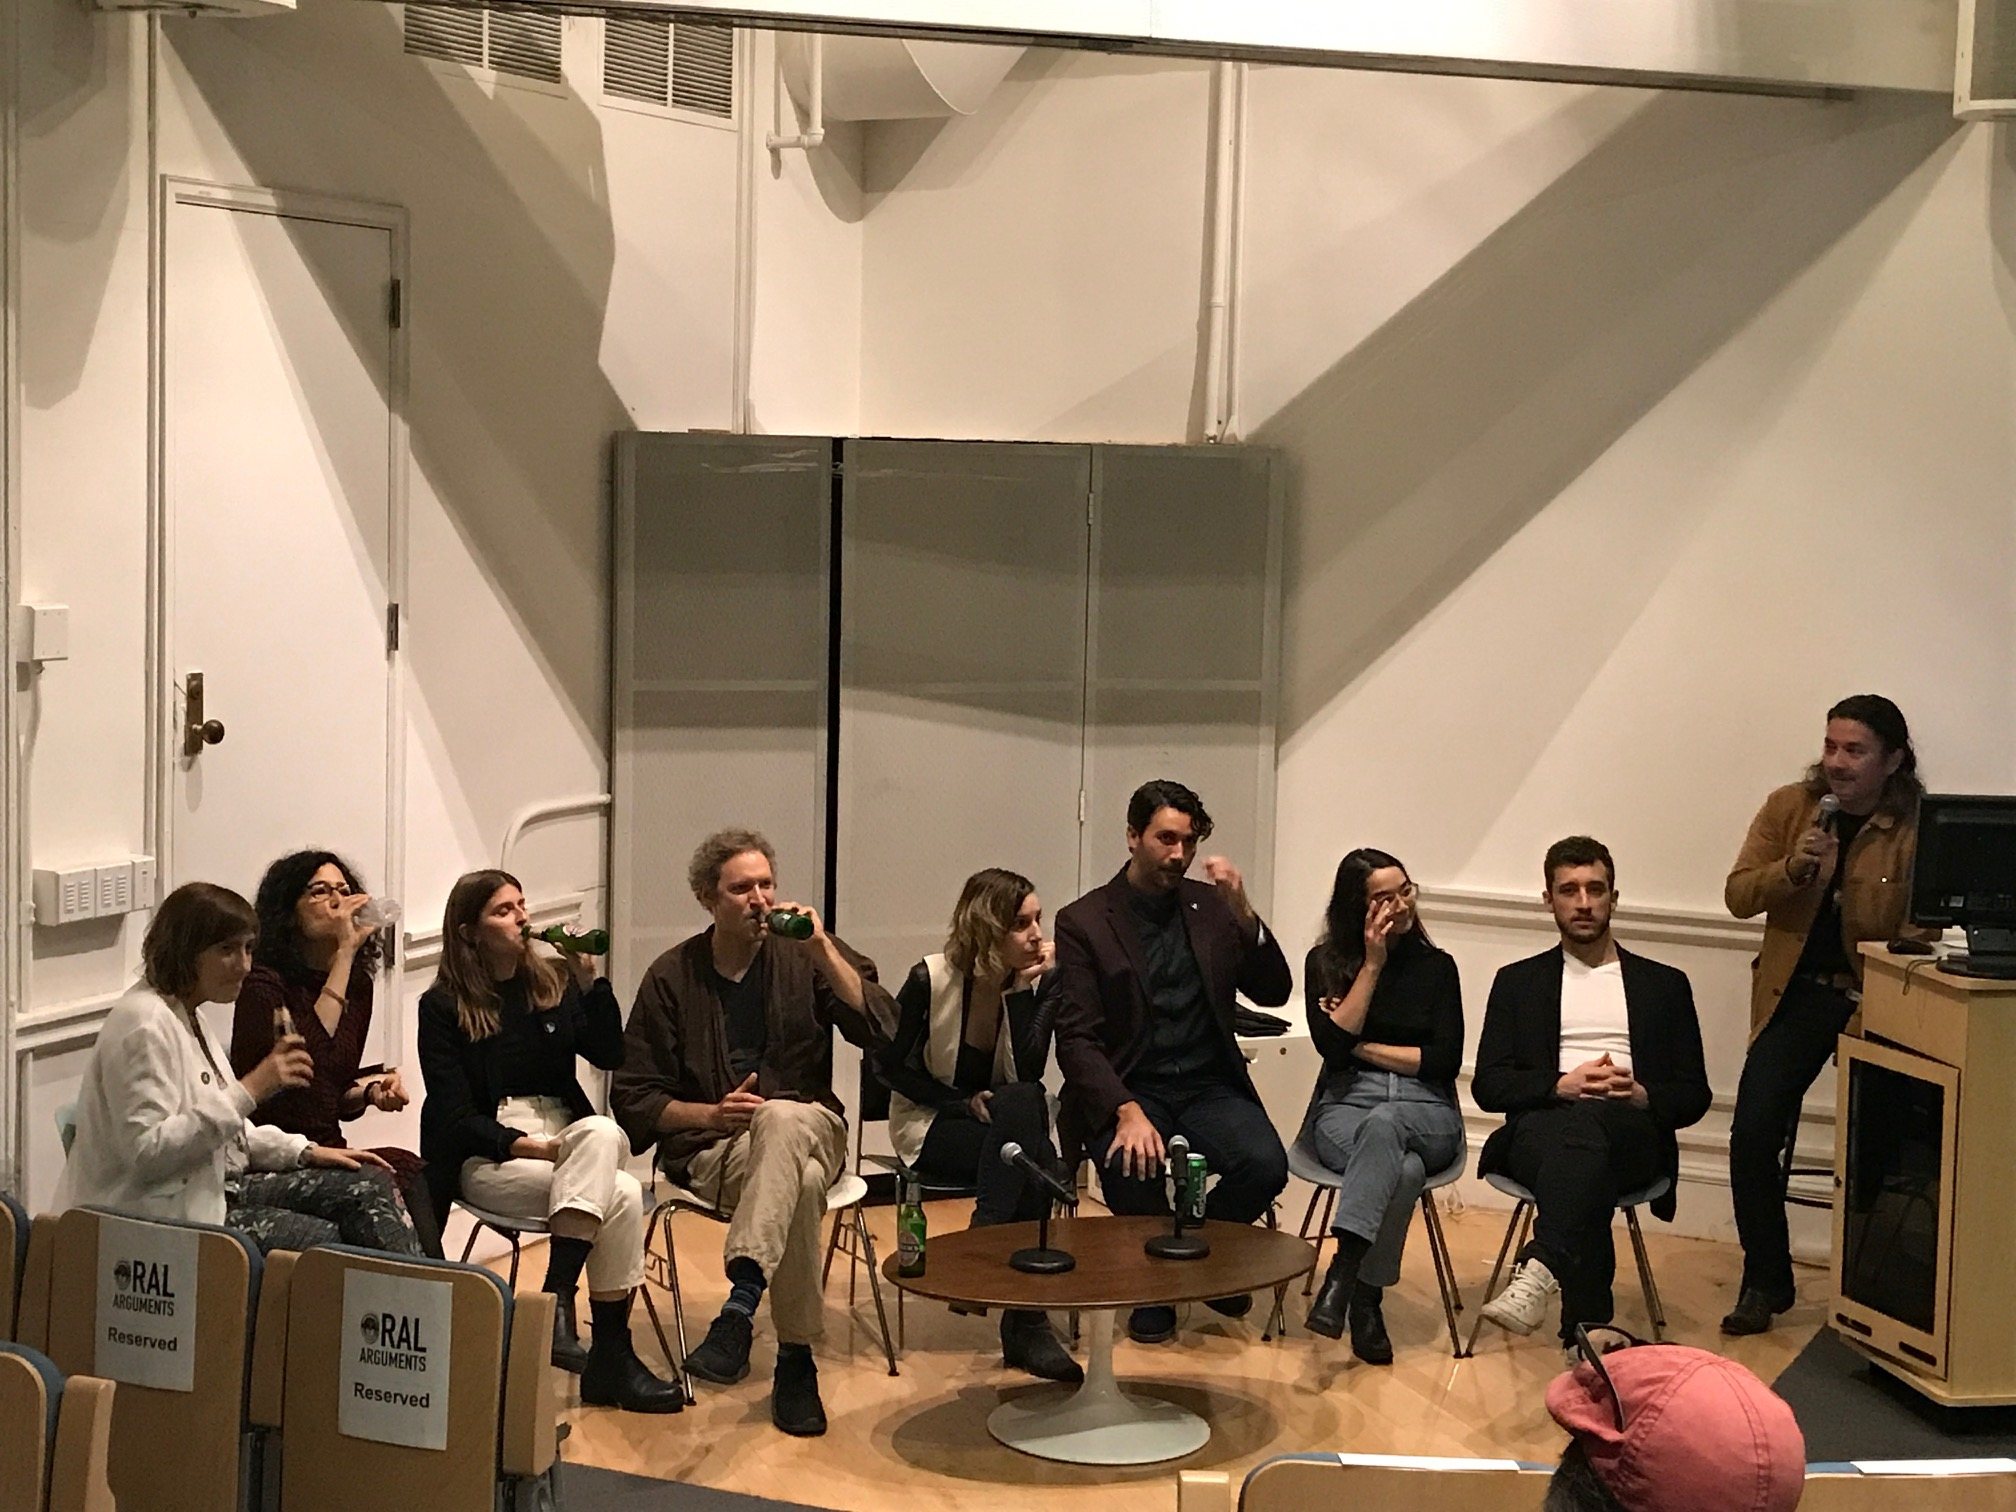 The very first Oral Arguments took place at NYU on October 28, 2017. Volume I consisted of eight presenters, all alumni of The Art & Law Program. The presenters were: Thomas Beale, Abram Coetsee, Terike Haapoja, Nicole Belangeil Kaack, Kenneth Pietrobono, Susan Rosenberg, Vered Snear, and Alex Strada.